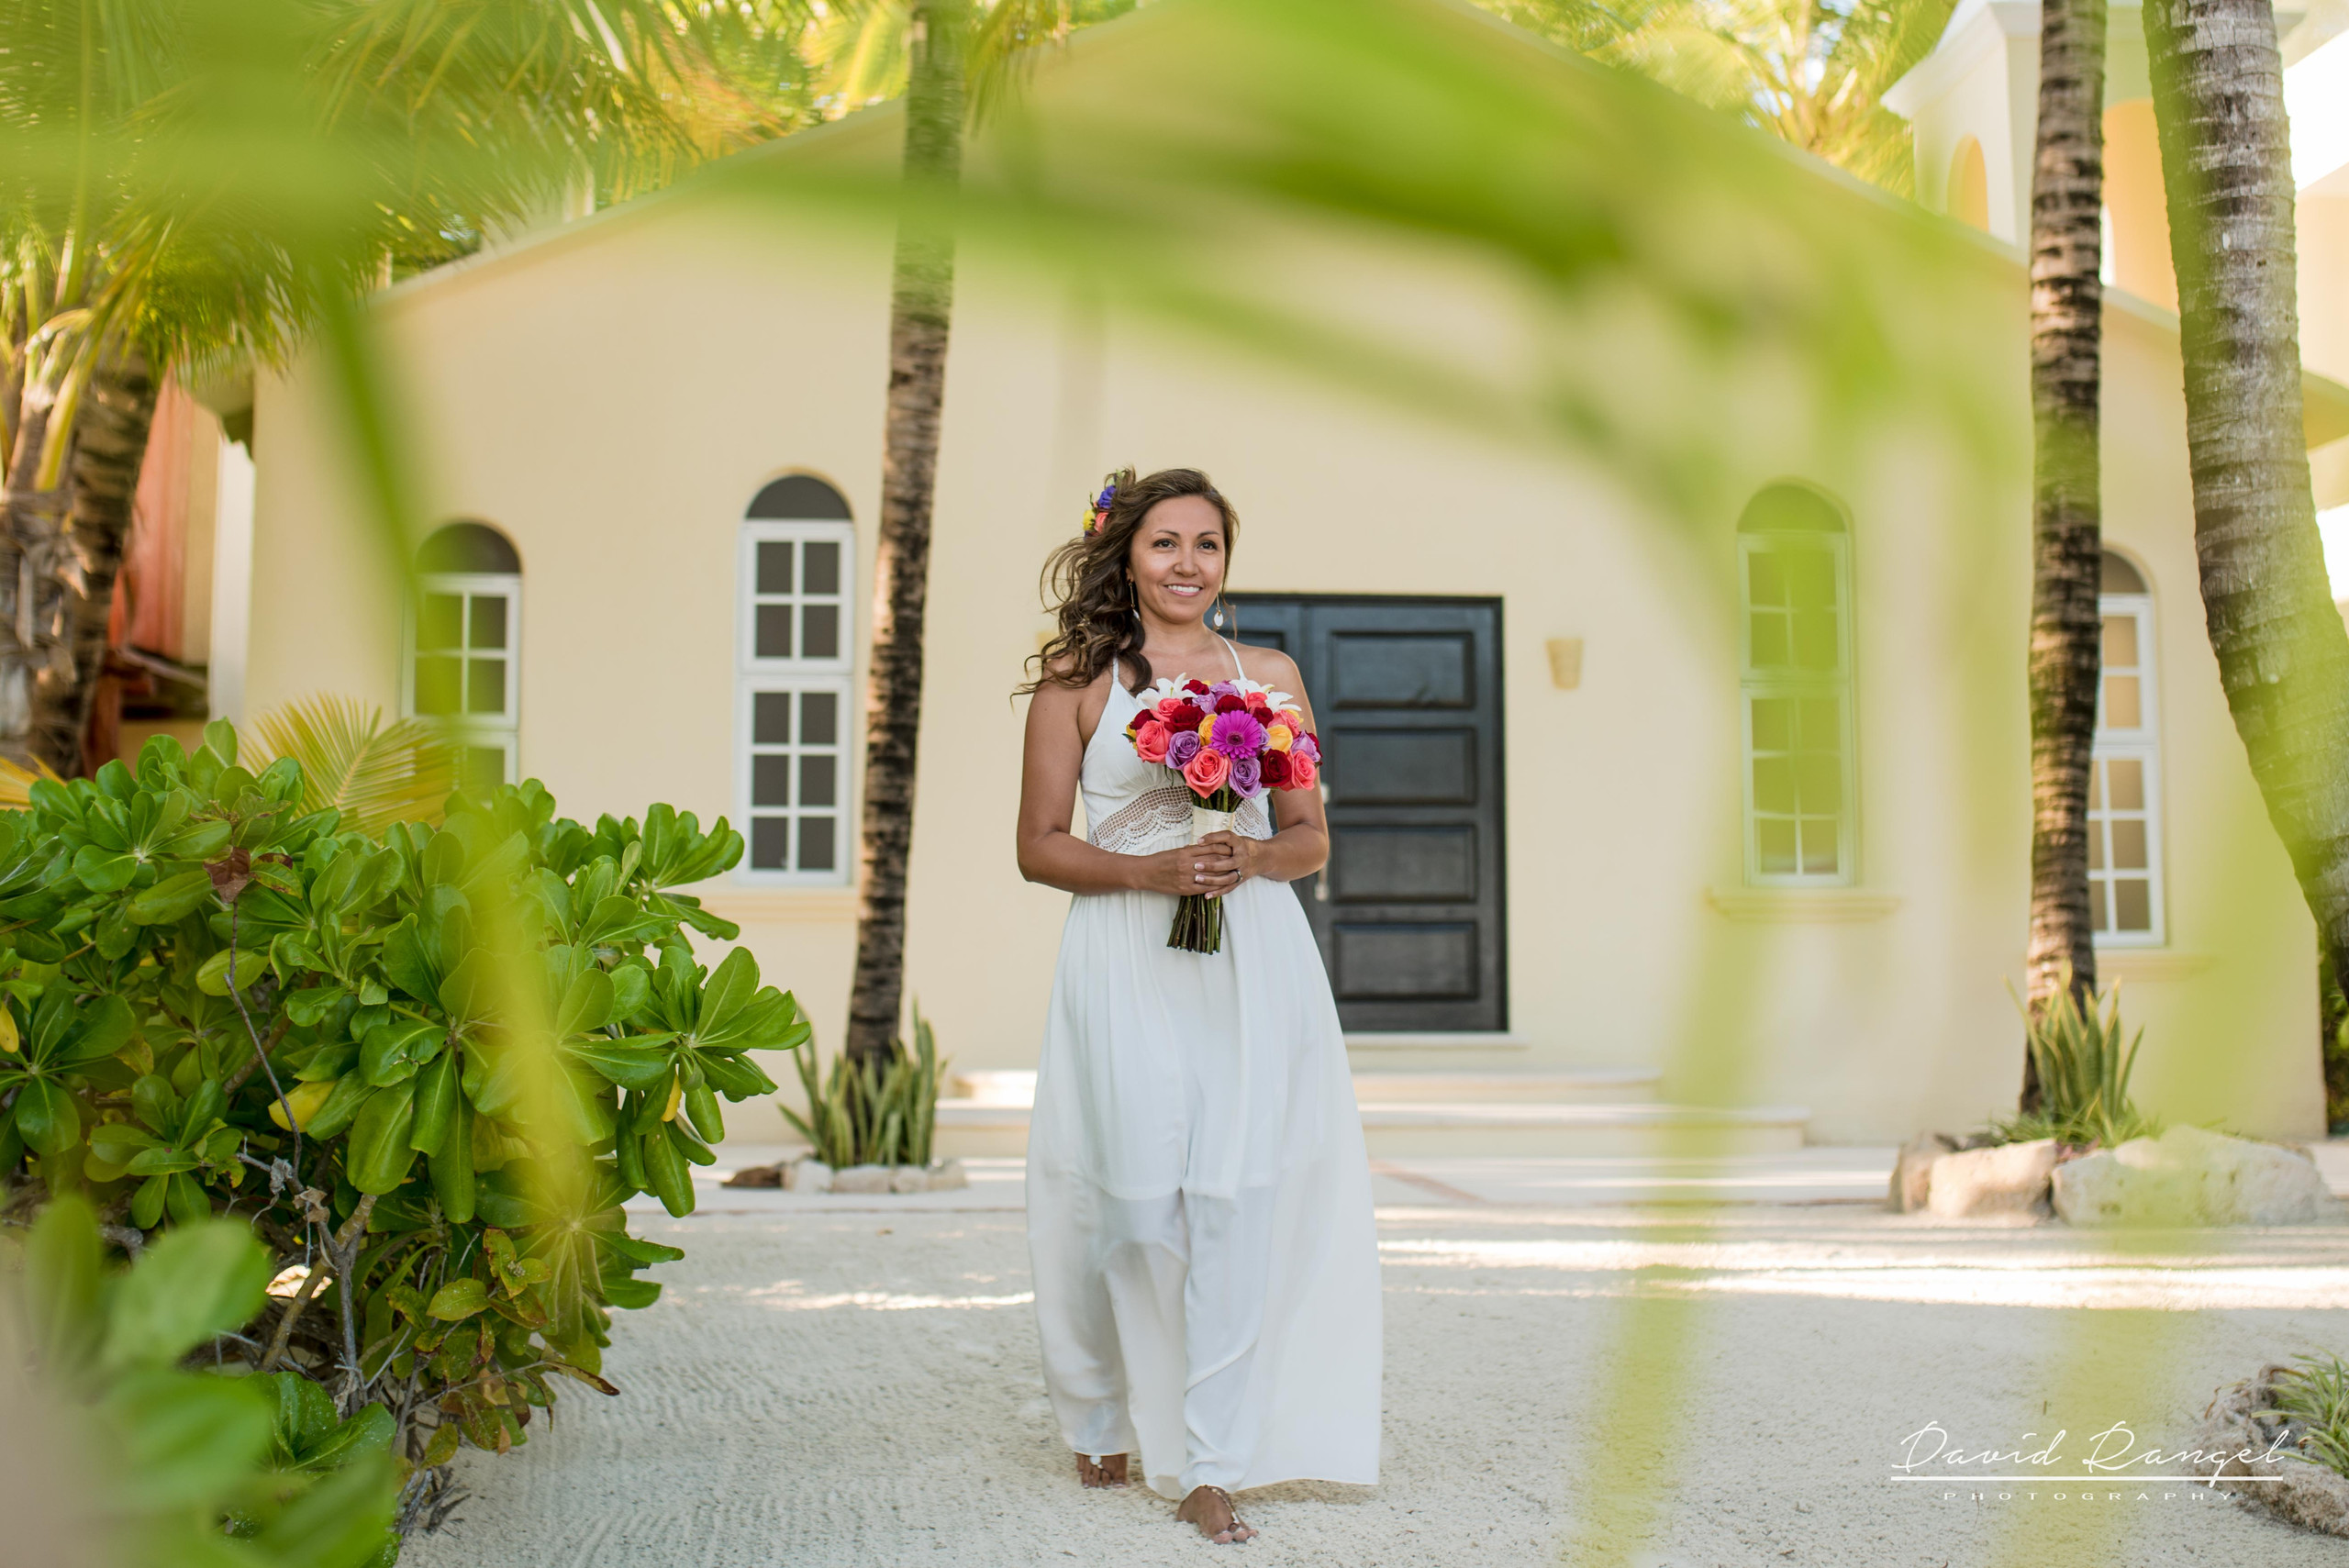 bride+novia+photo+foto+bouquet+chapel+iglesia+wedding+dress+aisle